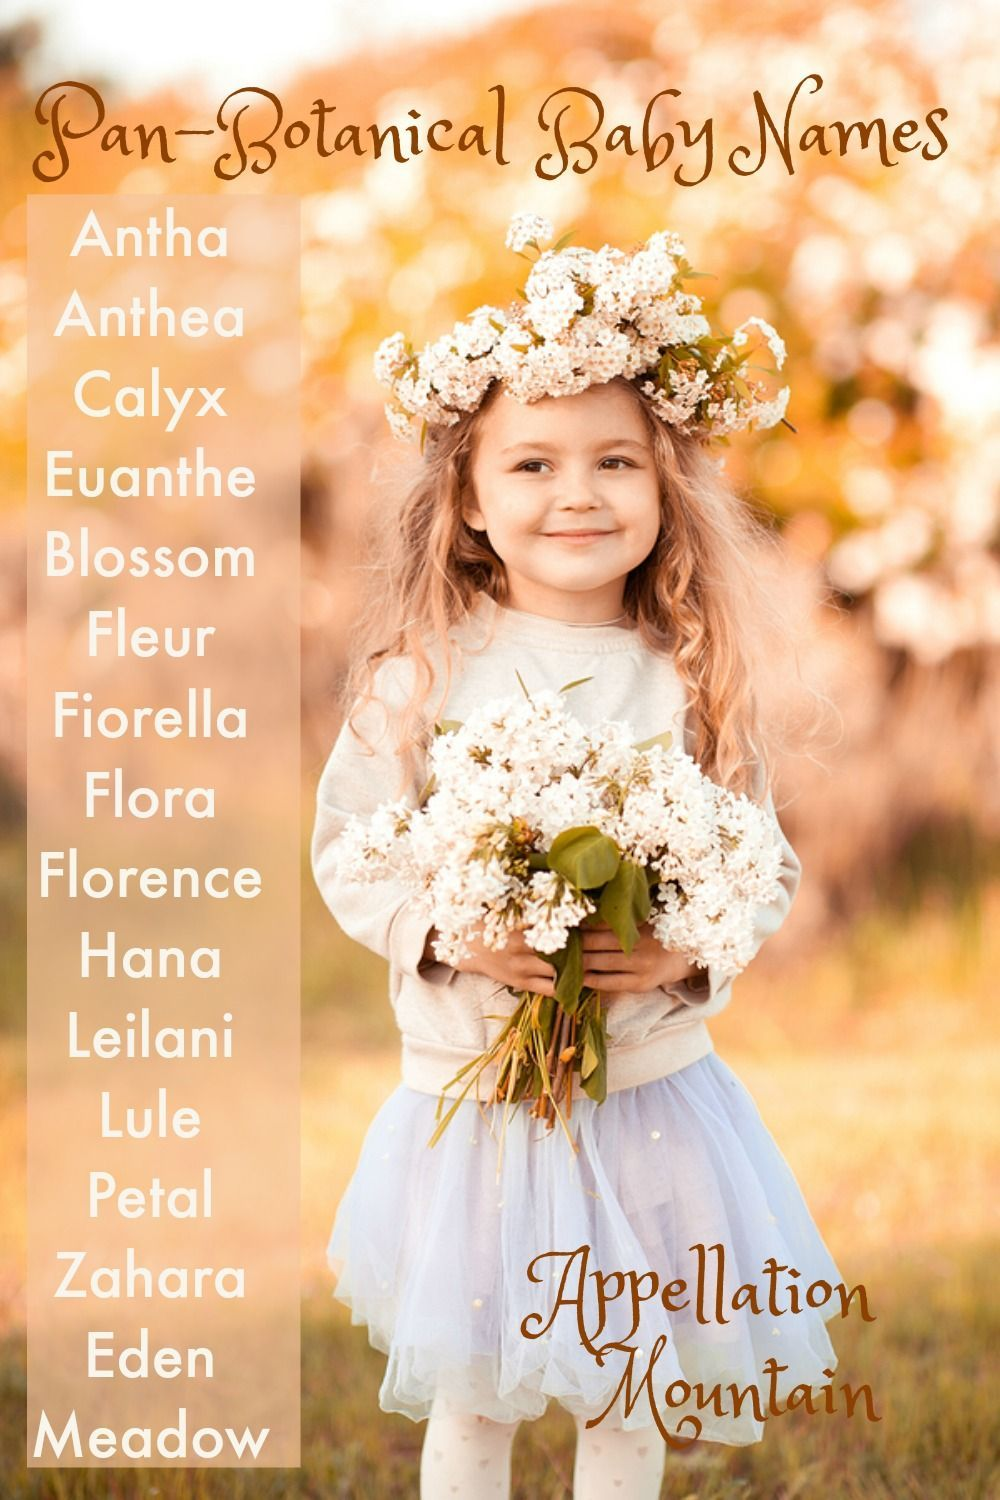 PanBotanical Baby Names Blossom, Eden and Fleur Baby